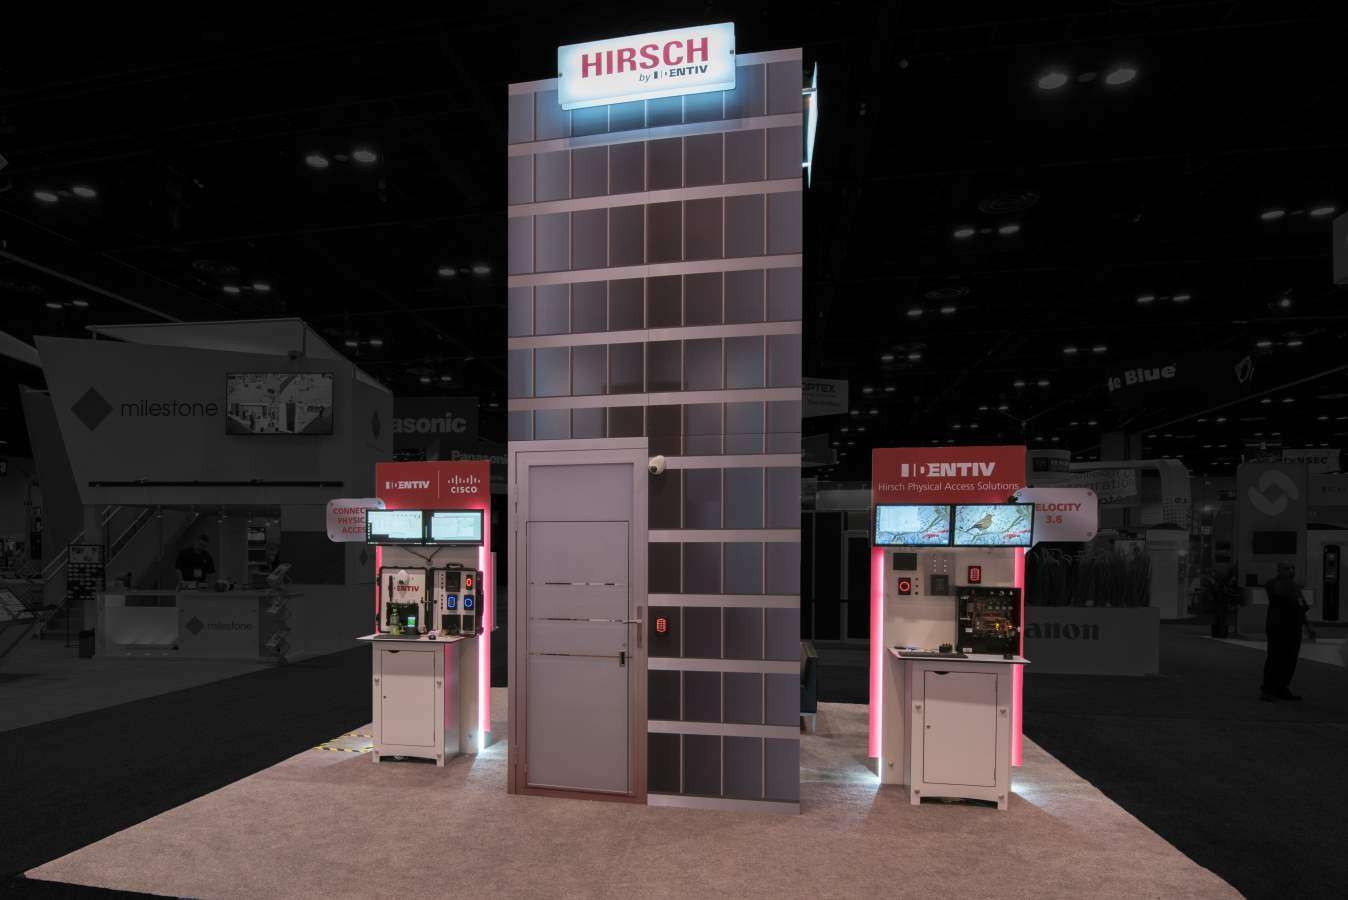 10x20 rental booth for identiv @ ASIS Show, Orlando